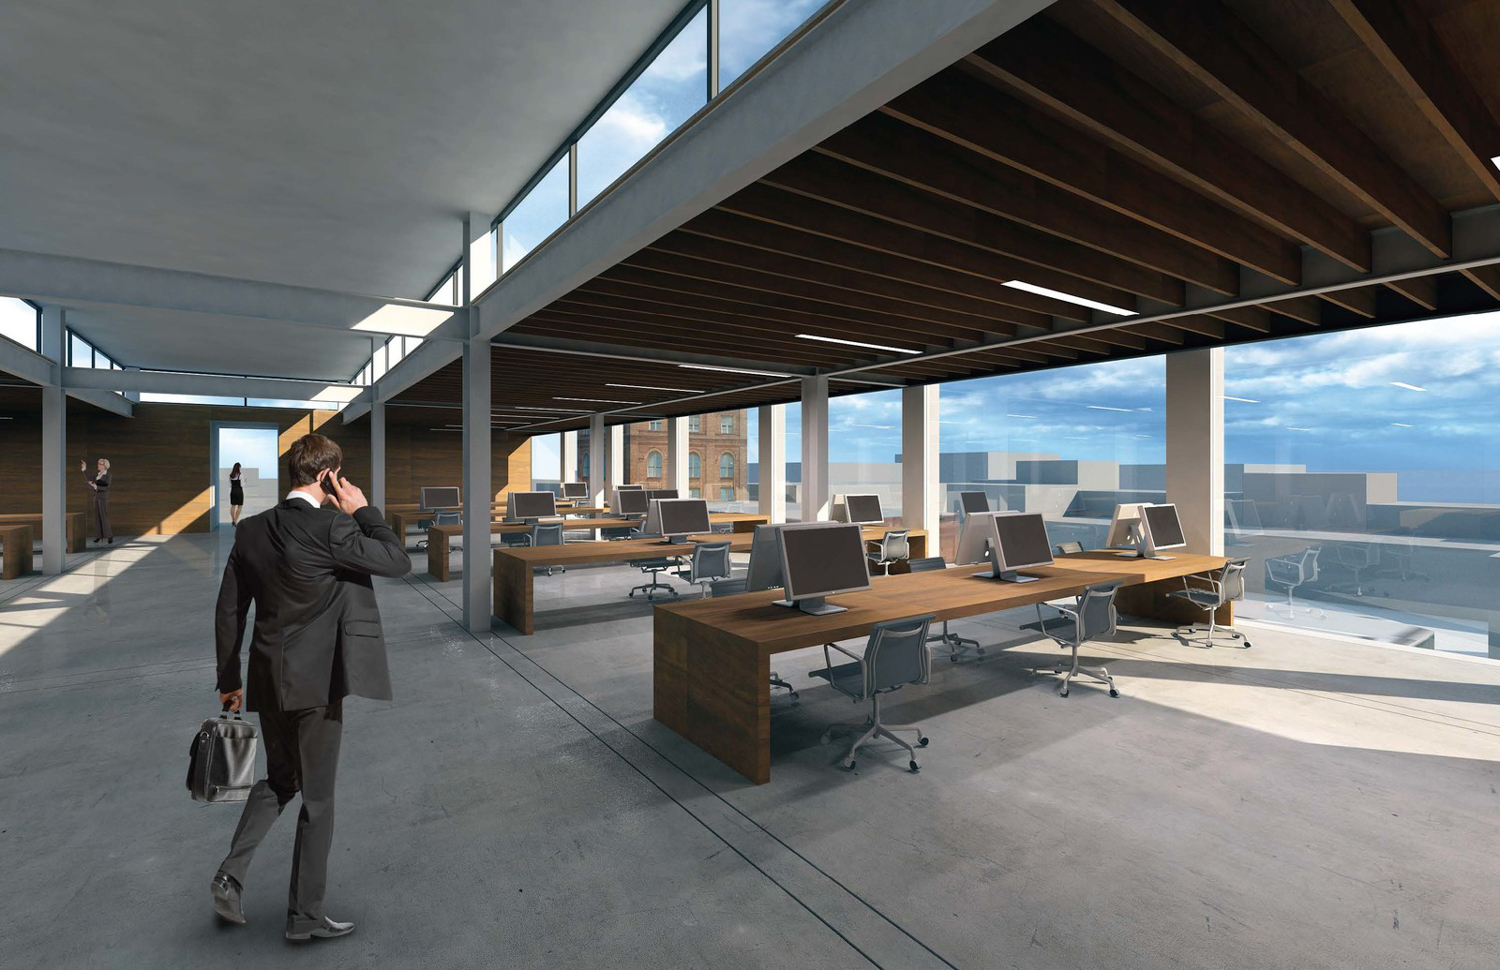 340 11th Street office space interior, rendering courtesy Stanley Saitowitz Natoma Architects